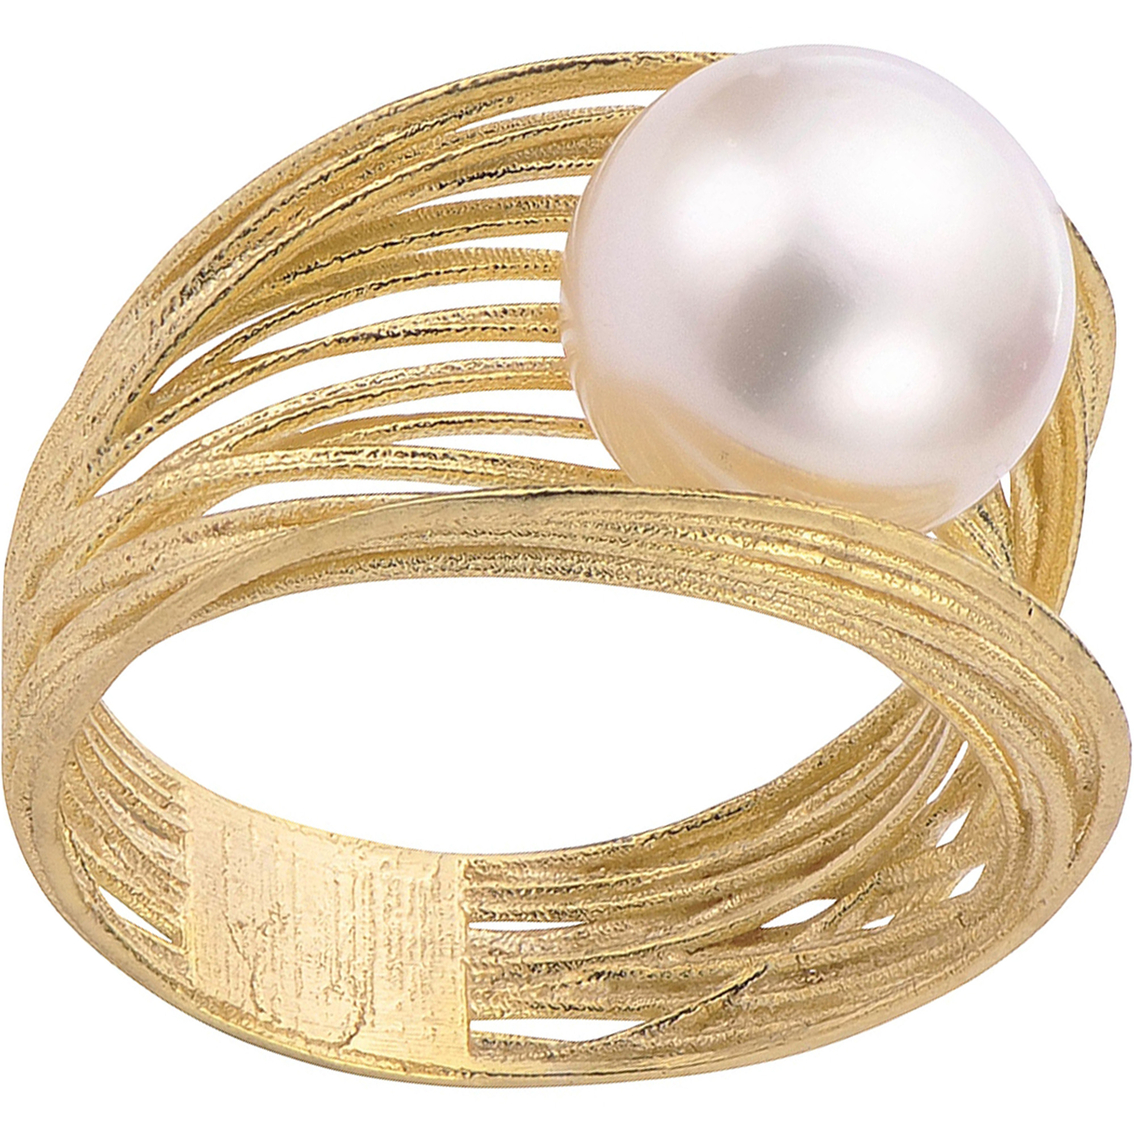 dd274a4f3 Imperial 14K Yellow Gold Filigree Style Freshwater Cultured Pearl Ring Size  7